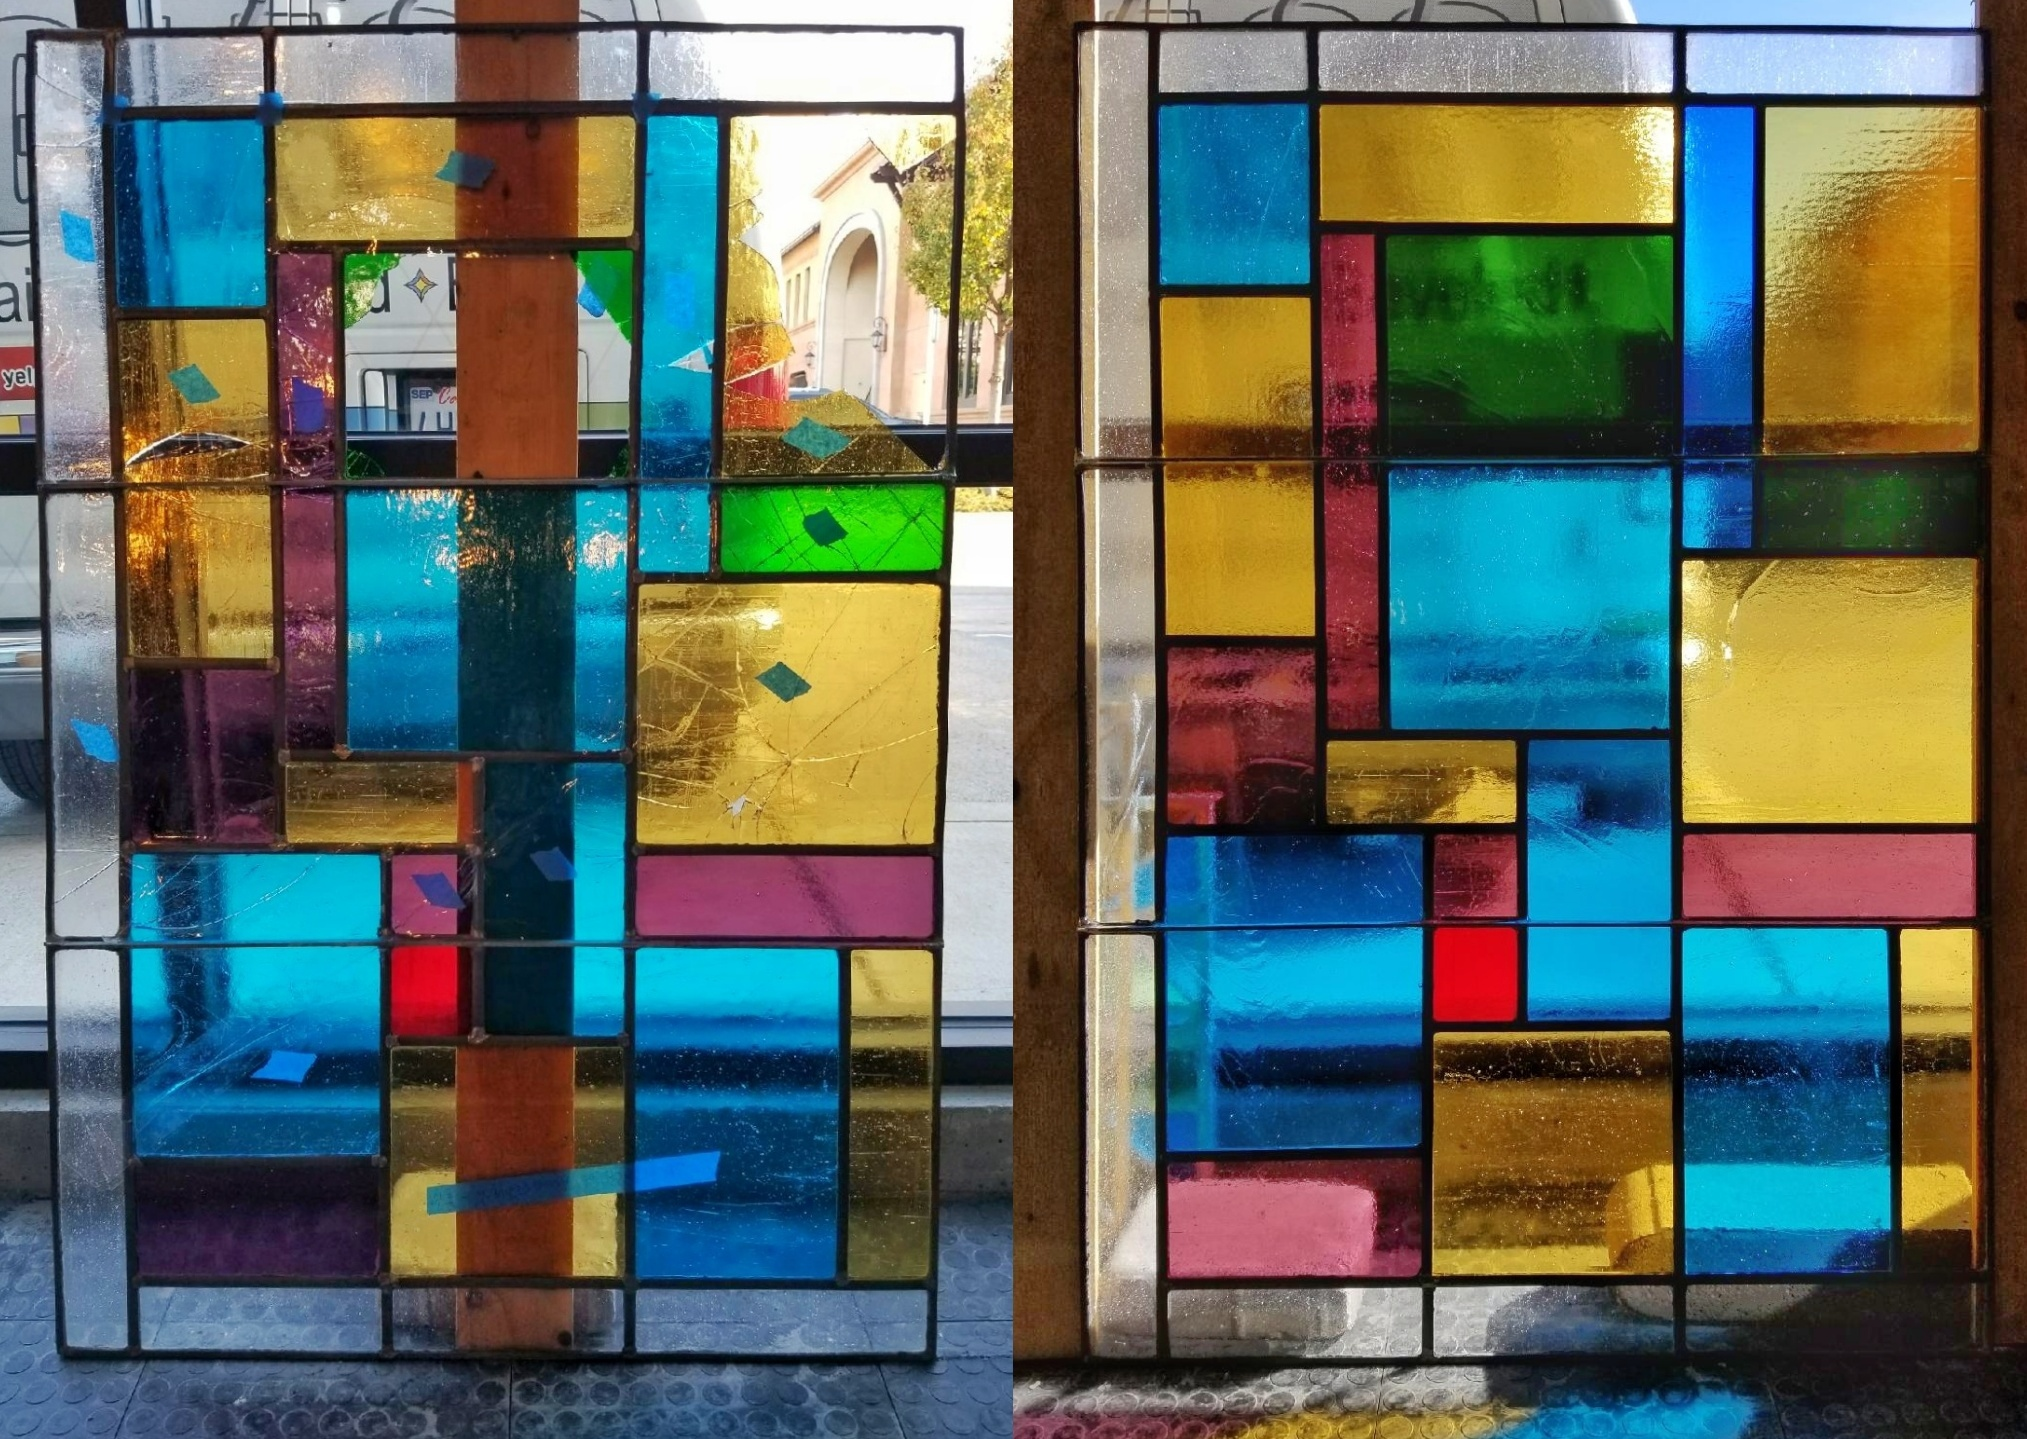 stained glass leaded glass design legacy glass studios menlo park bay area california church pane.jpeg